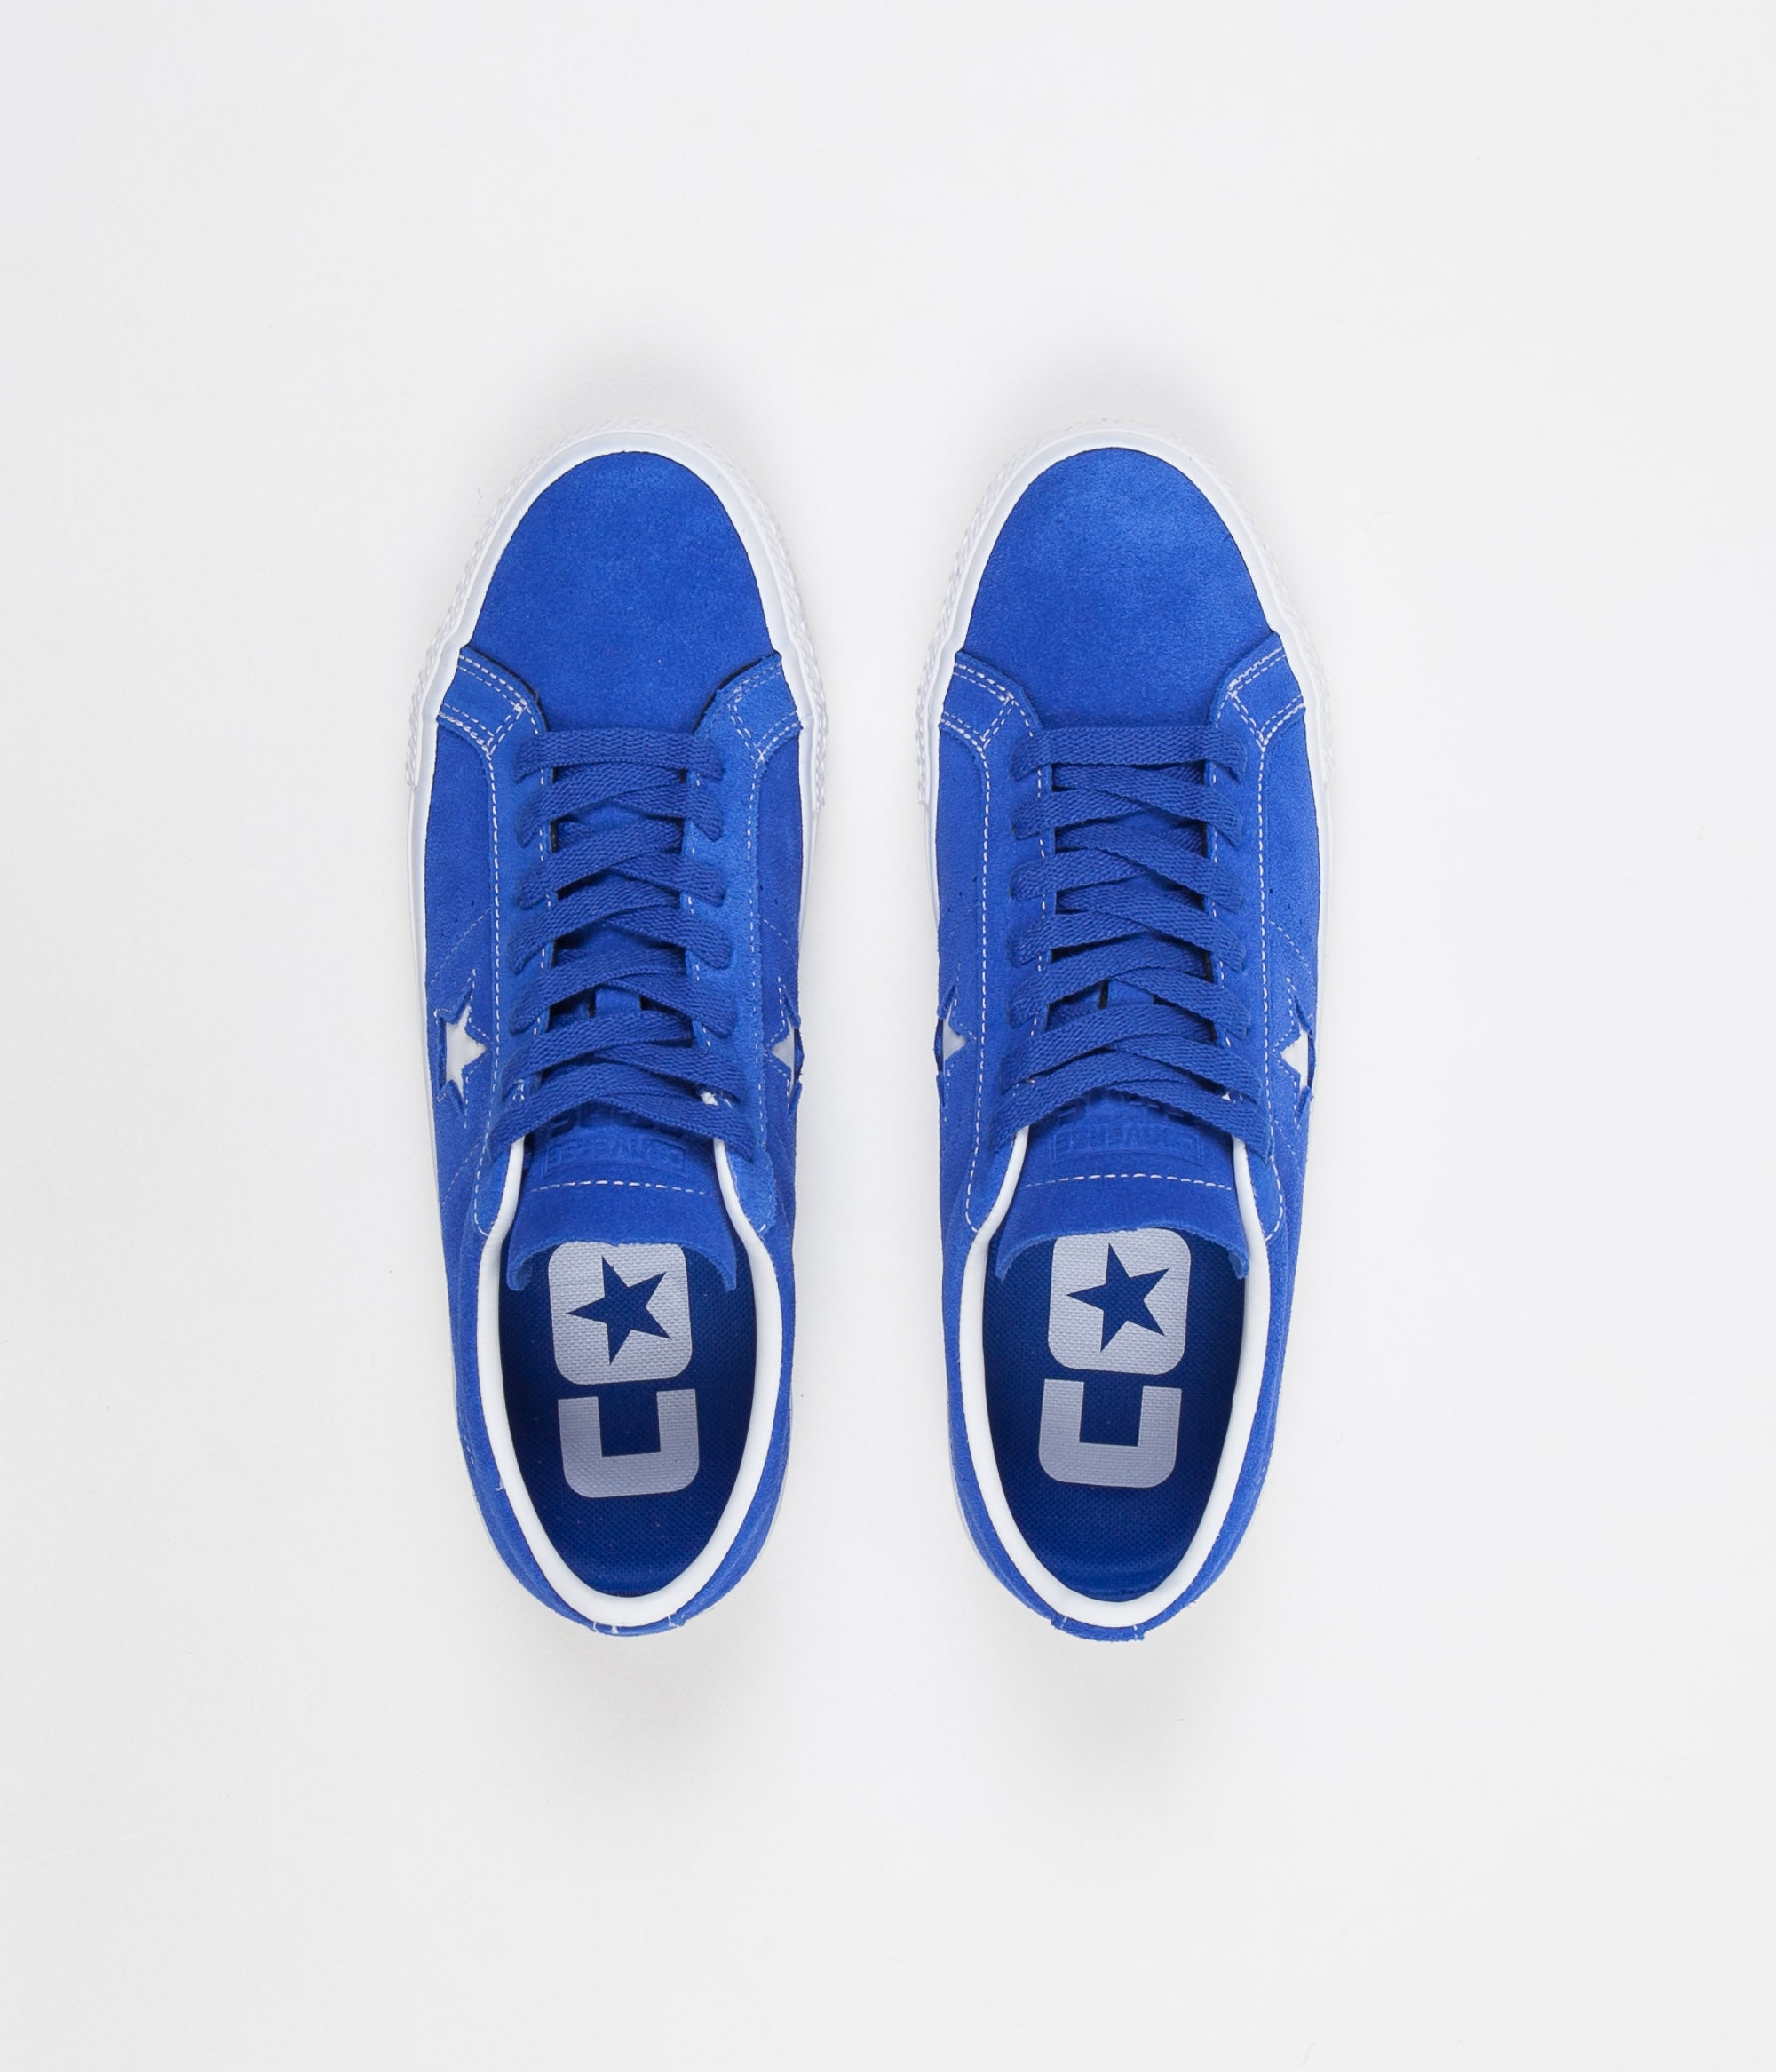 0af929fc9f49 Converse One Star Pro Ox Shoes - Hyper Royal   White   Black ...